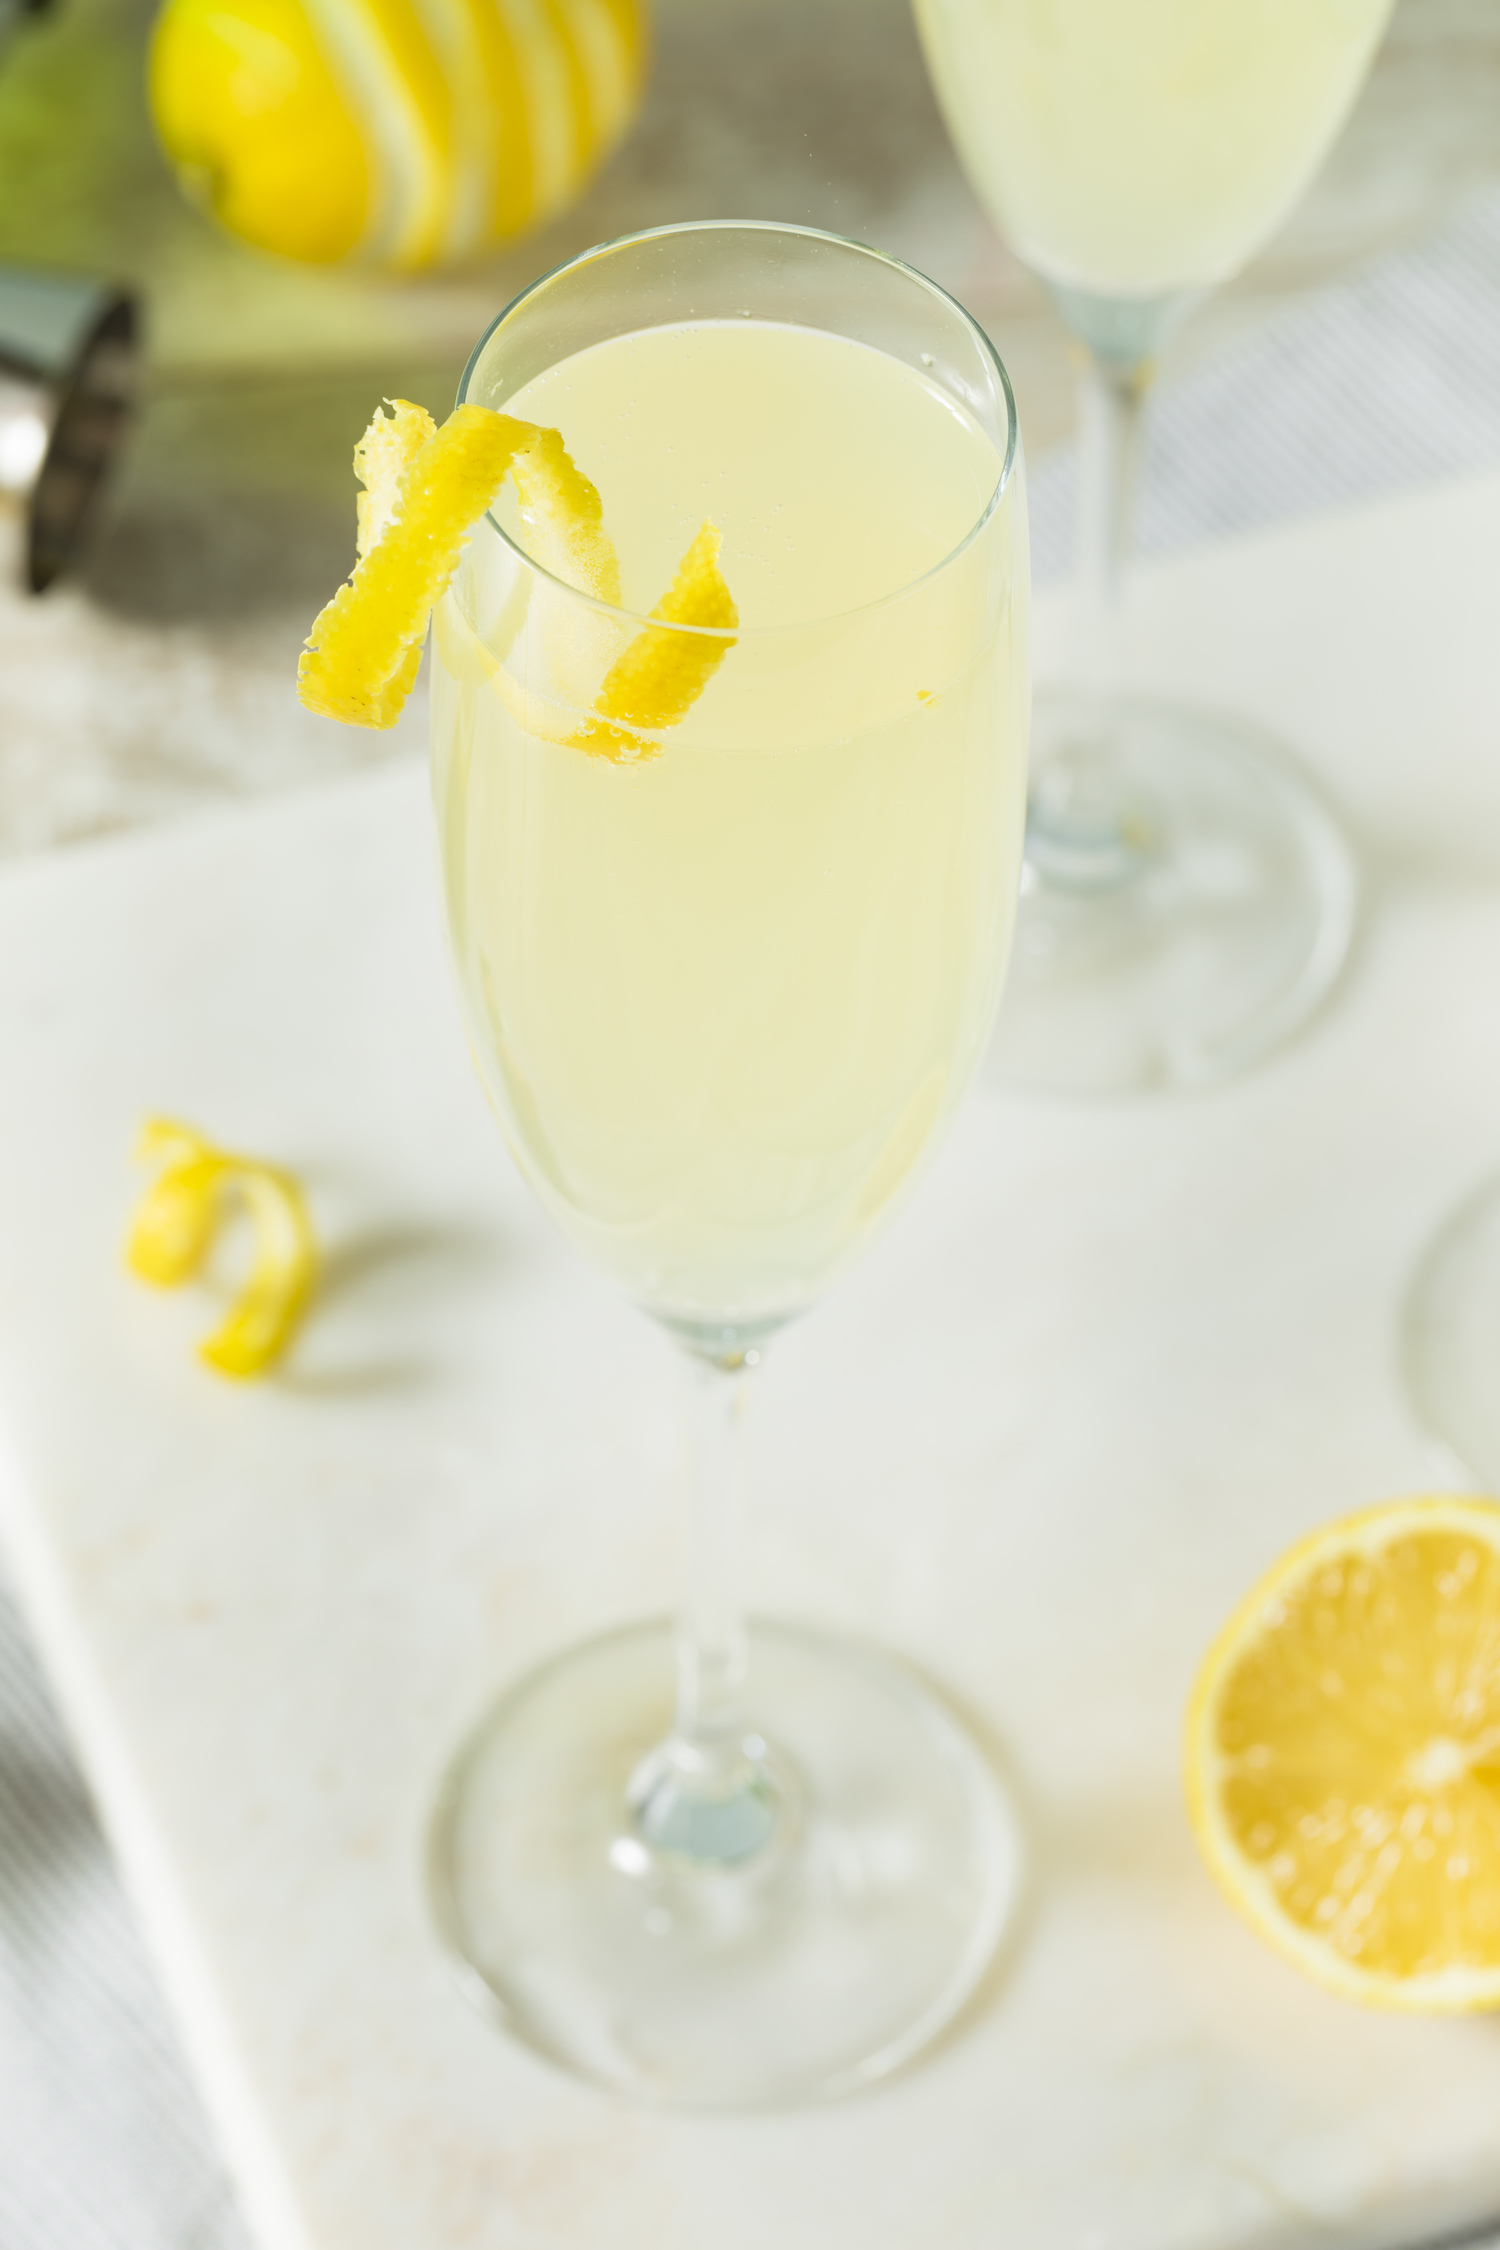 Elderflower cordial cocktail in a champagne class with lemon slices